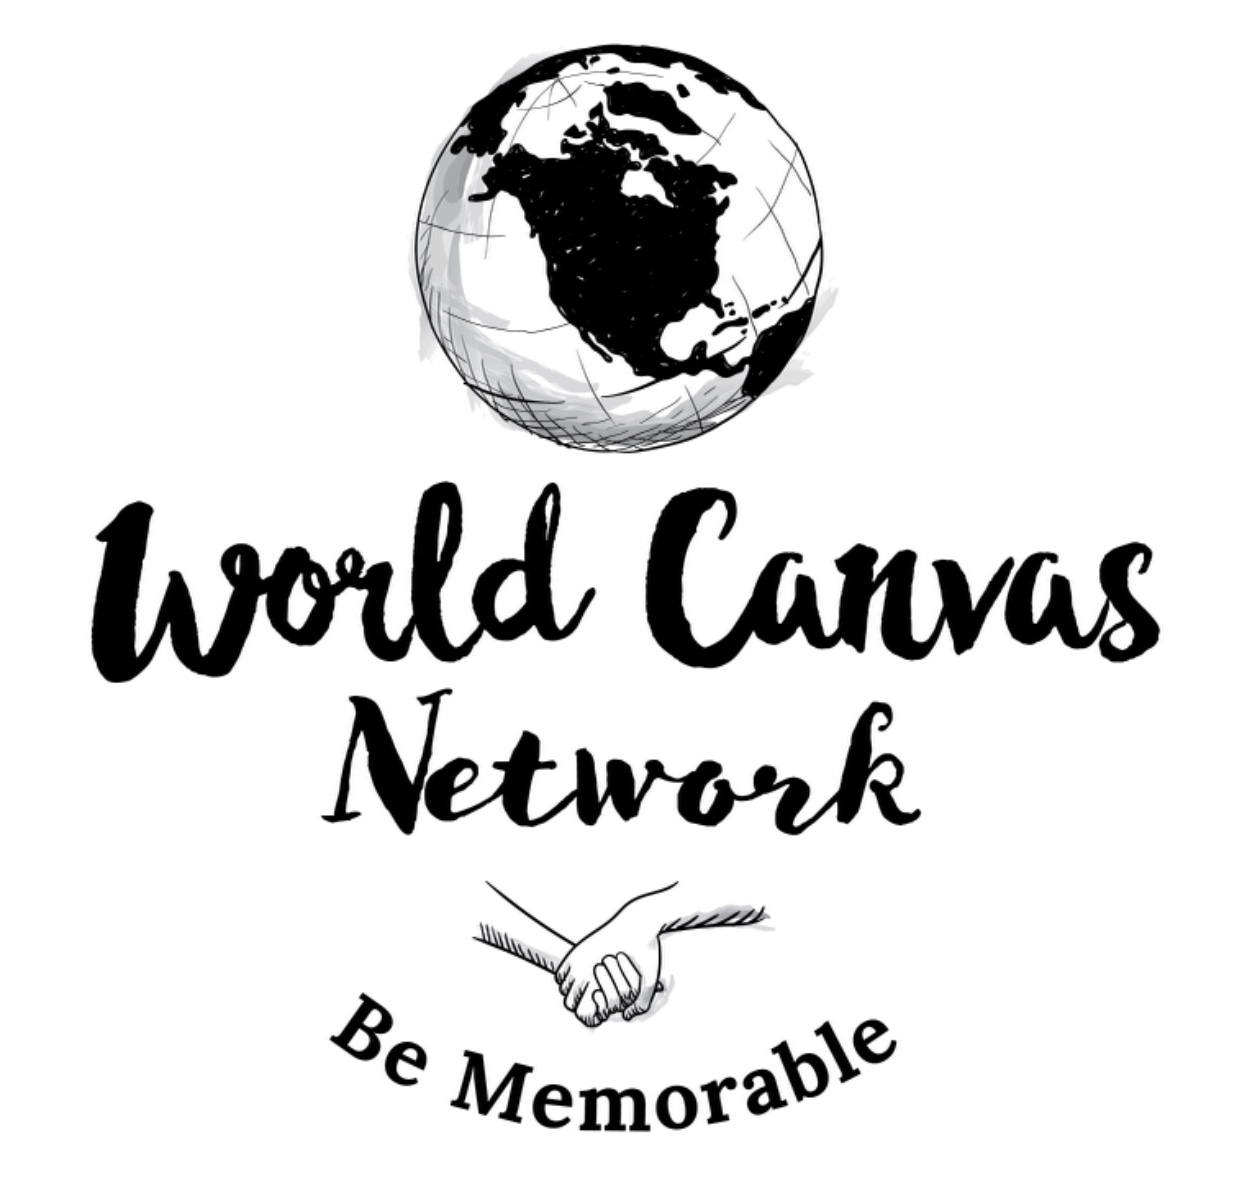 World Canvas Network, LLC